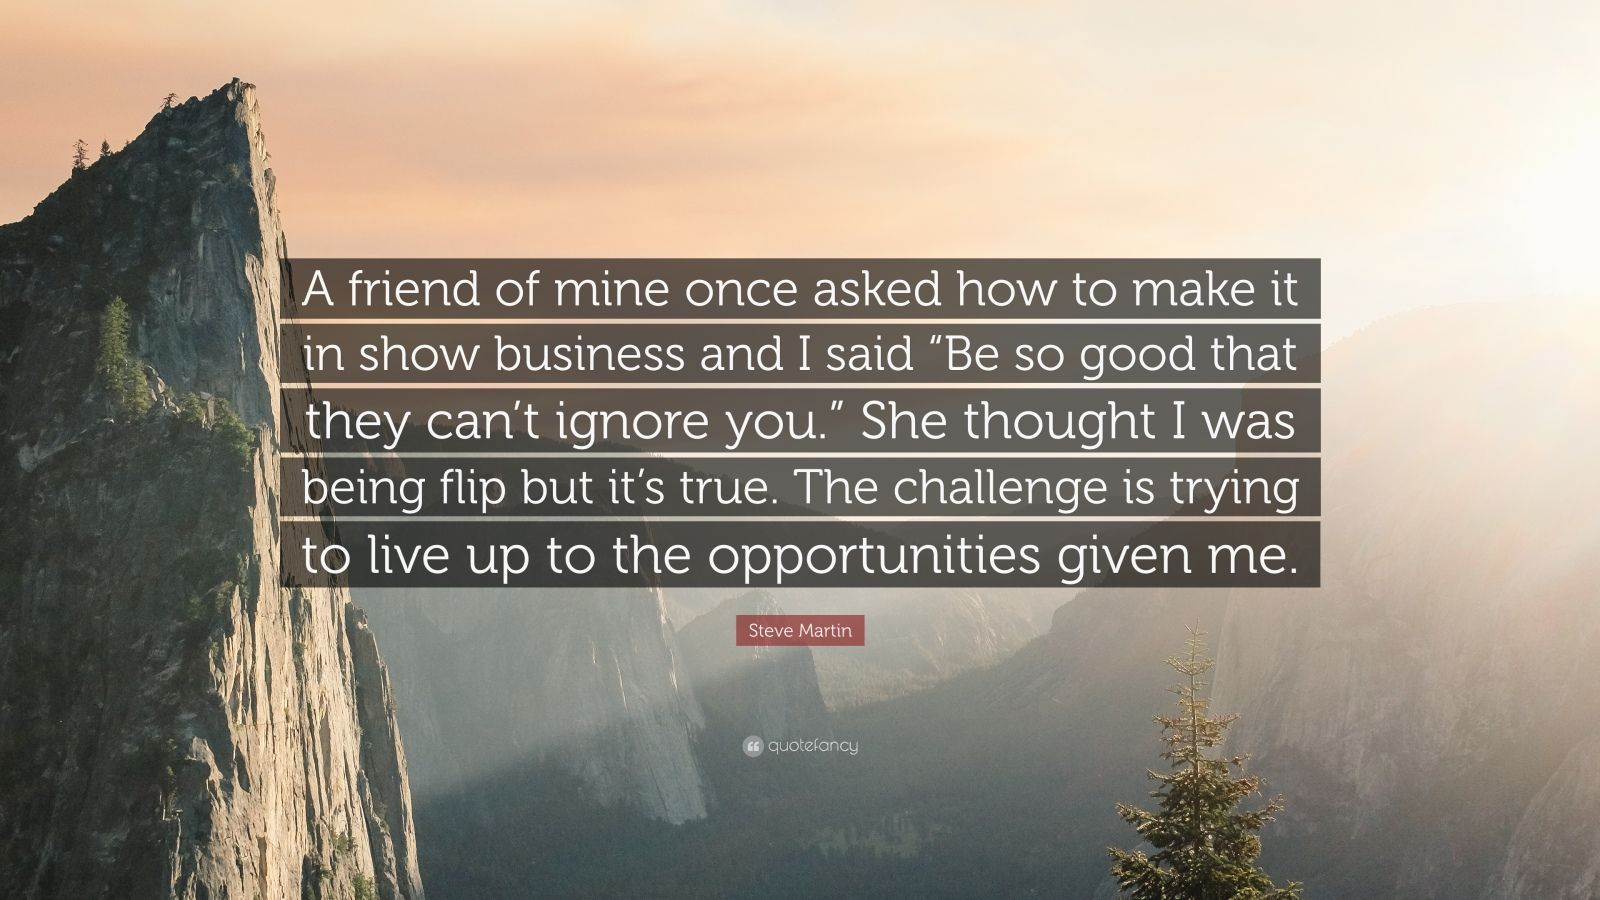 """Steve Martin Quote: """"A friend of mine once asked how to make it in show business and I said """"Be so good that they can't ignore you."""" She thought I was being flip but it's true. The challenge is trying to live up to the opportunities given me."""""""